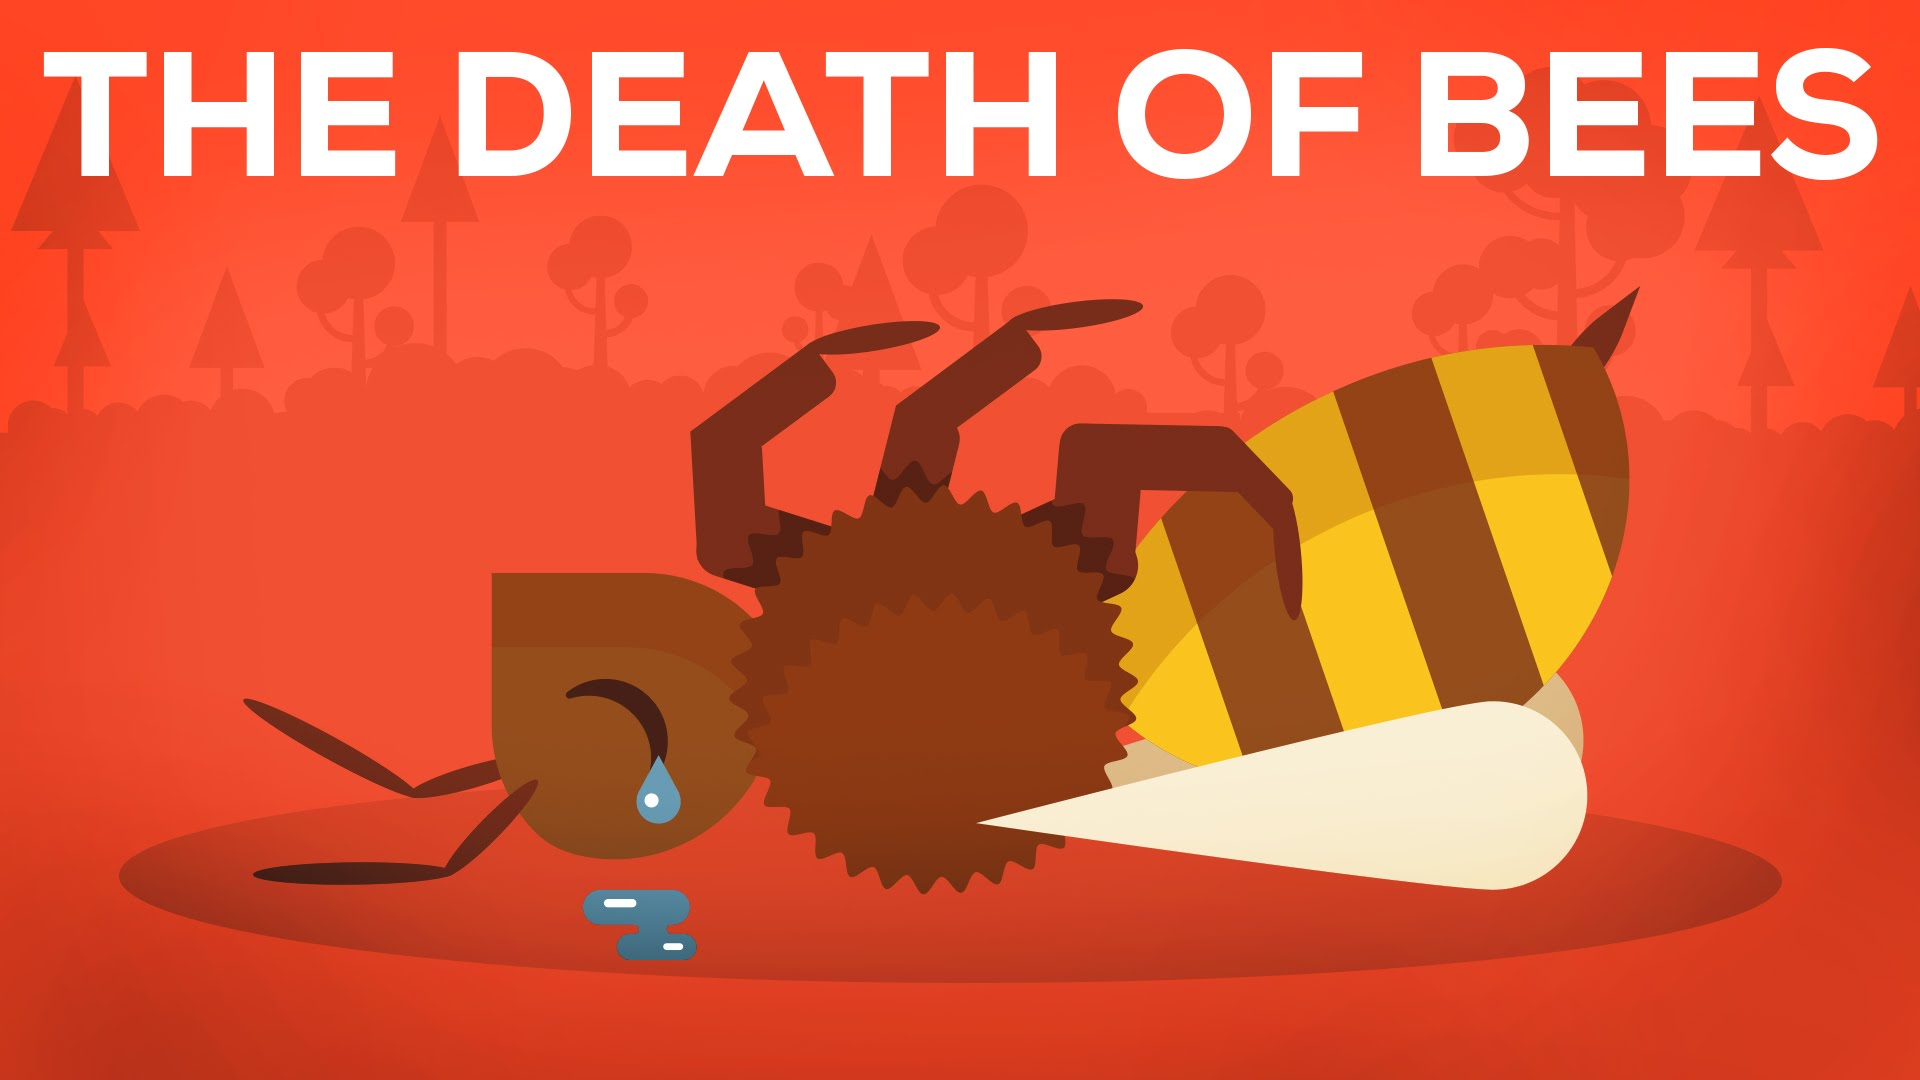 The Death Of Bees Explained.